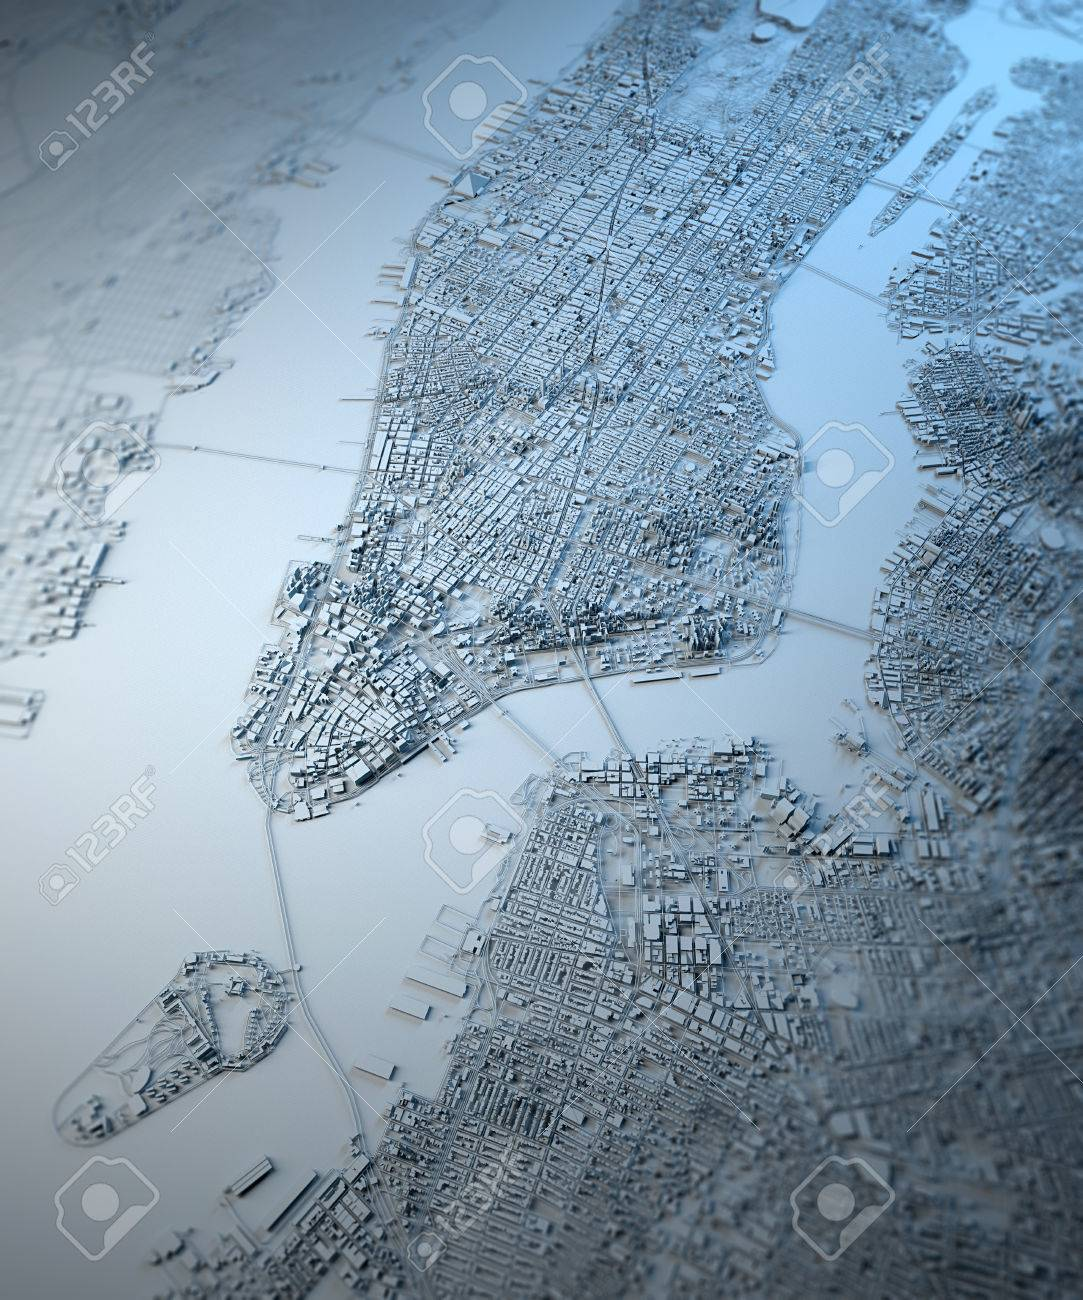 Map Of New York 3d.New York 3d Map Satellite View Building